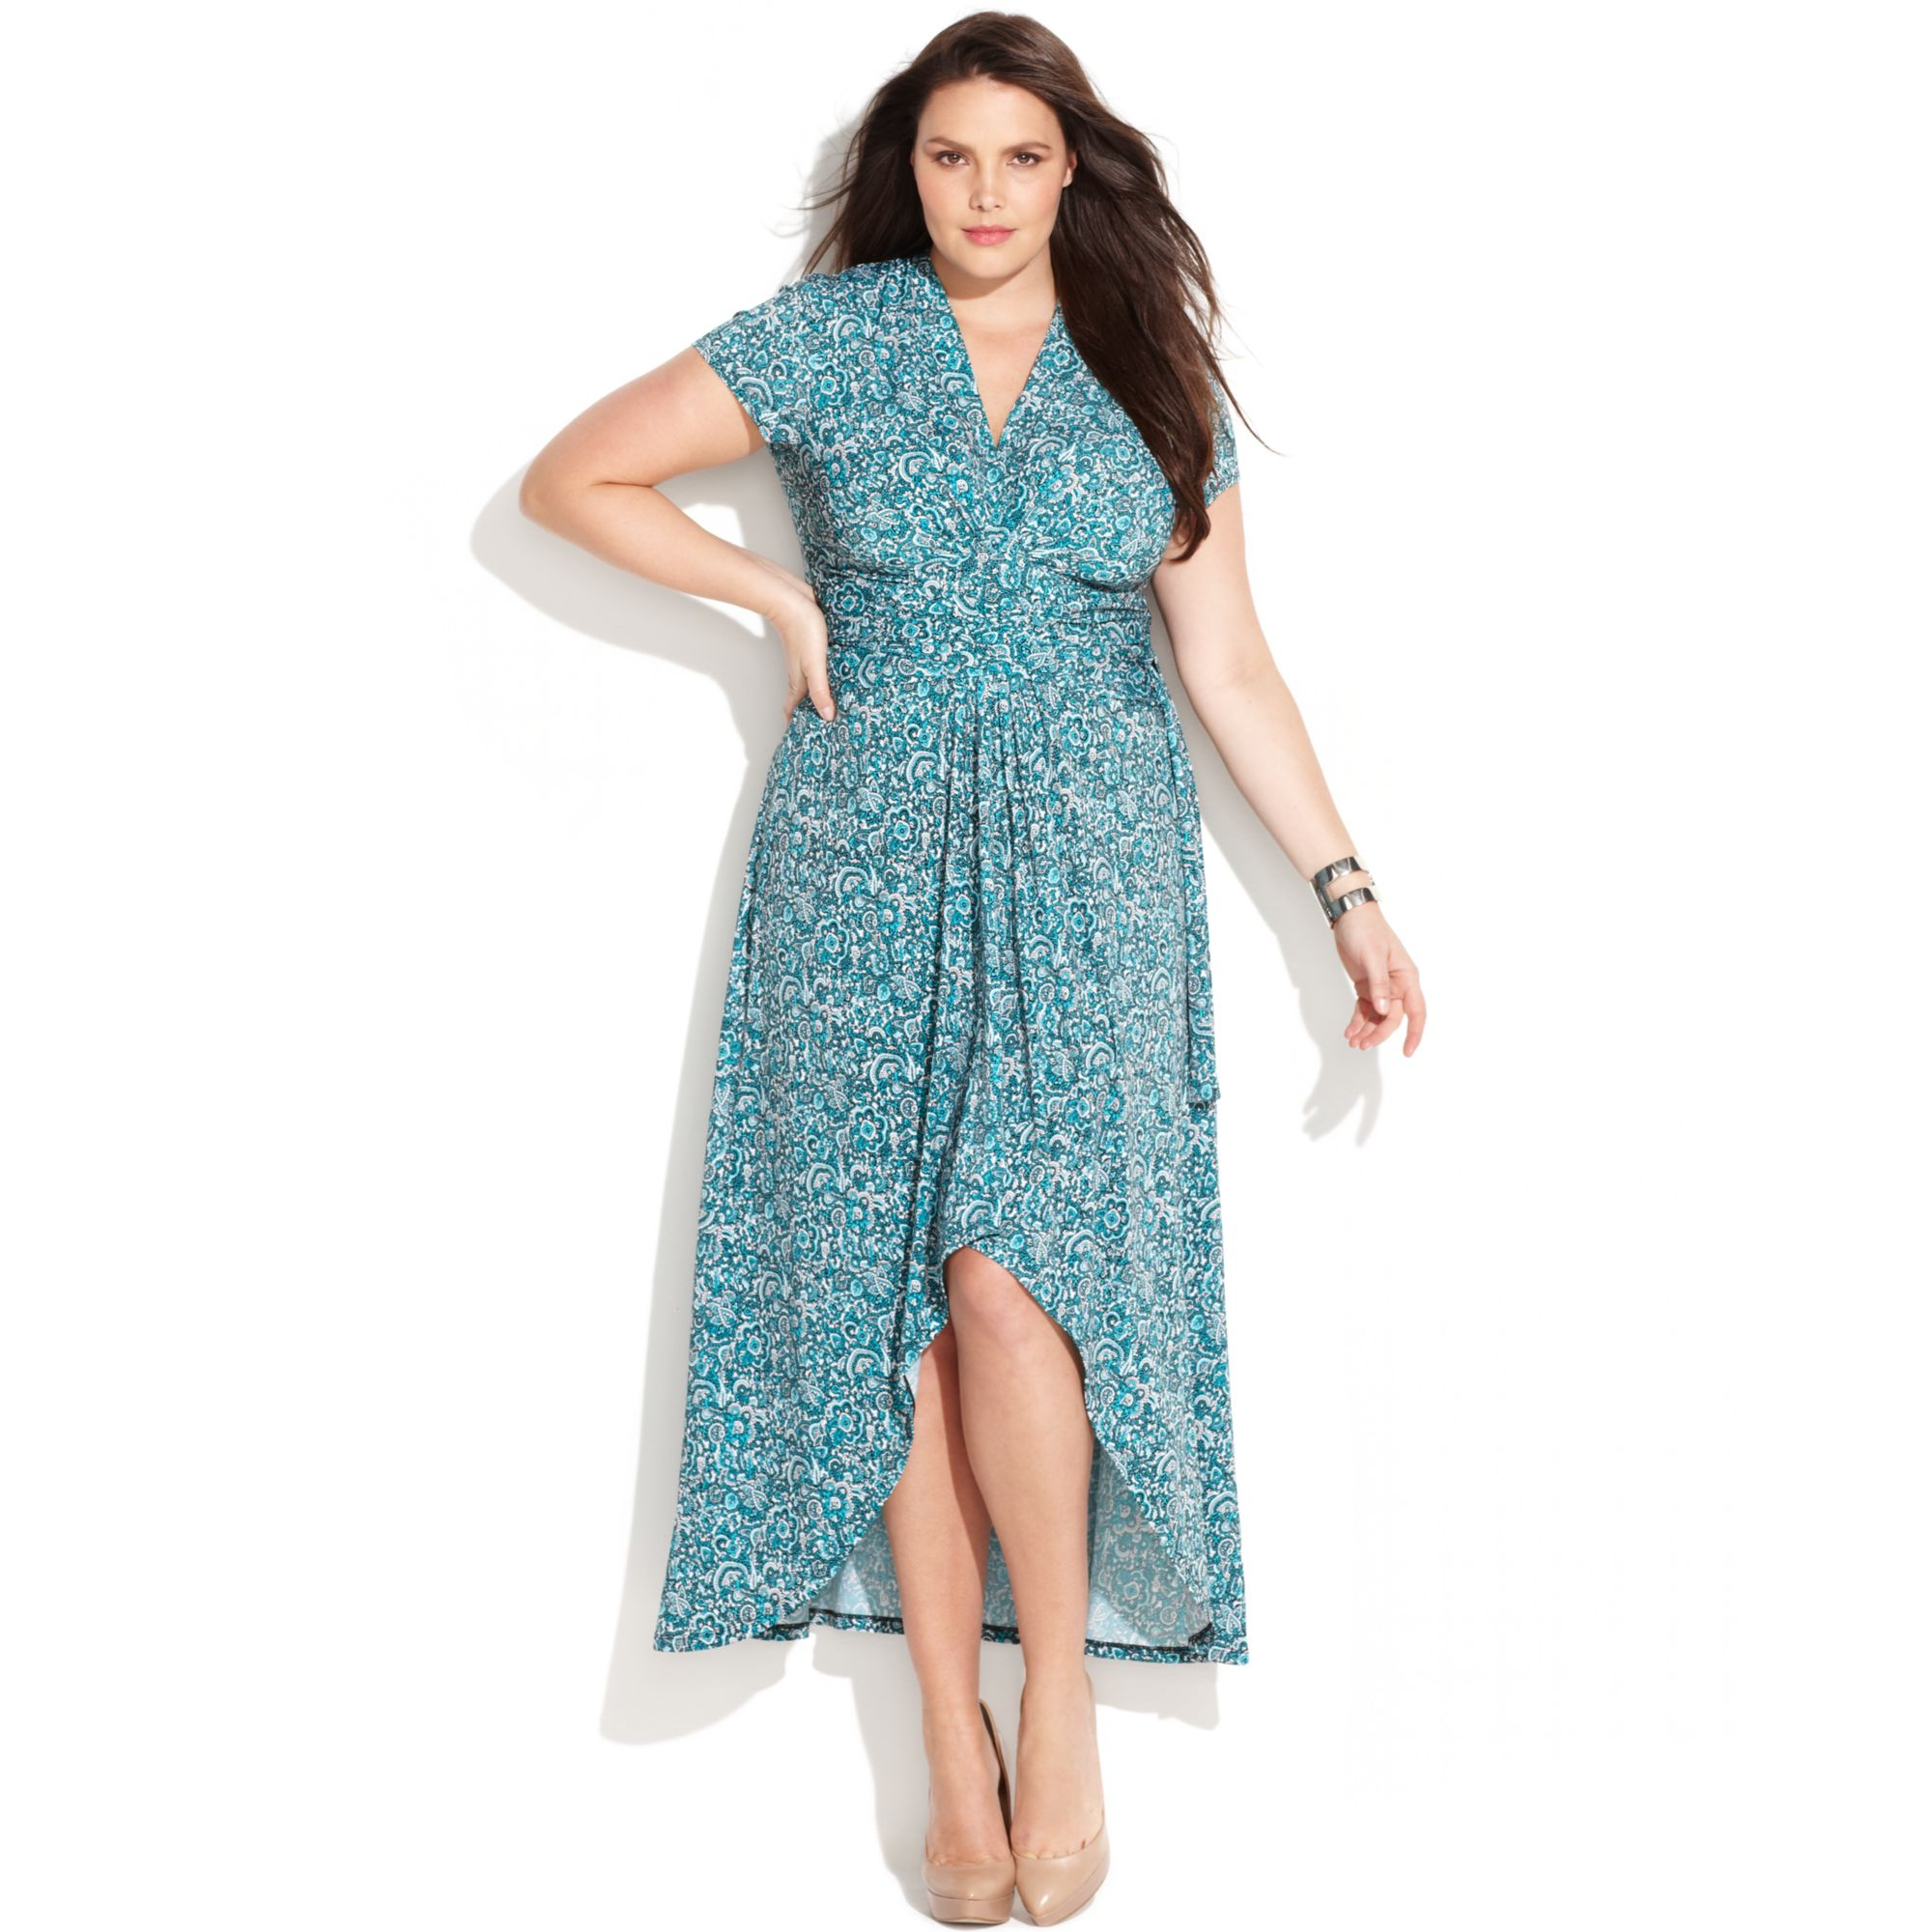 Lyst Michael Kors Plus Size Printed Faux Wrap Maxi Dress In Blue